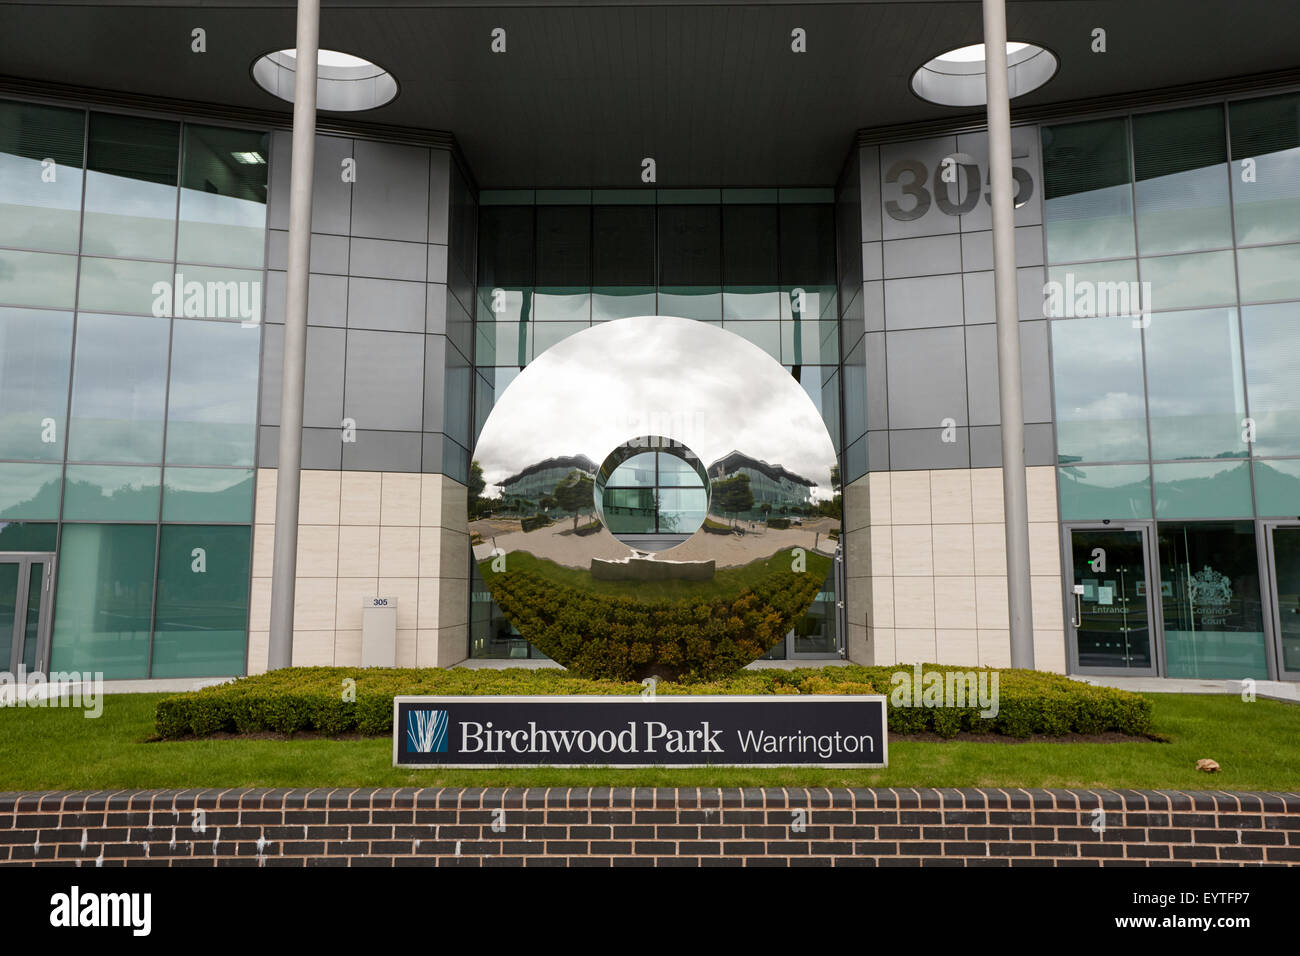 305 Bridgewater place birchwood park warrington site of the coroners court for the hillsborough inquest - Stock Image